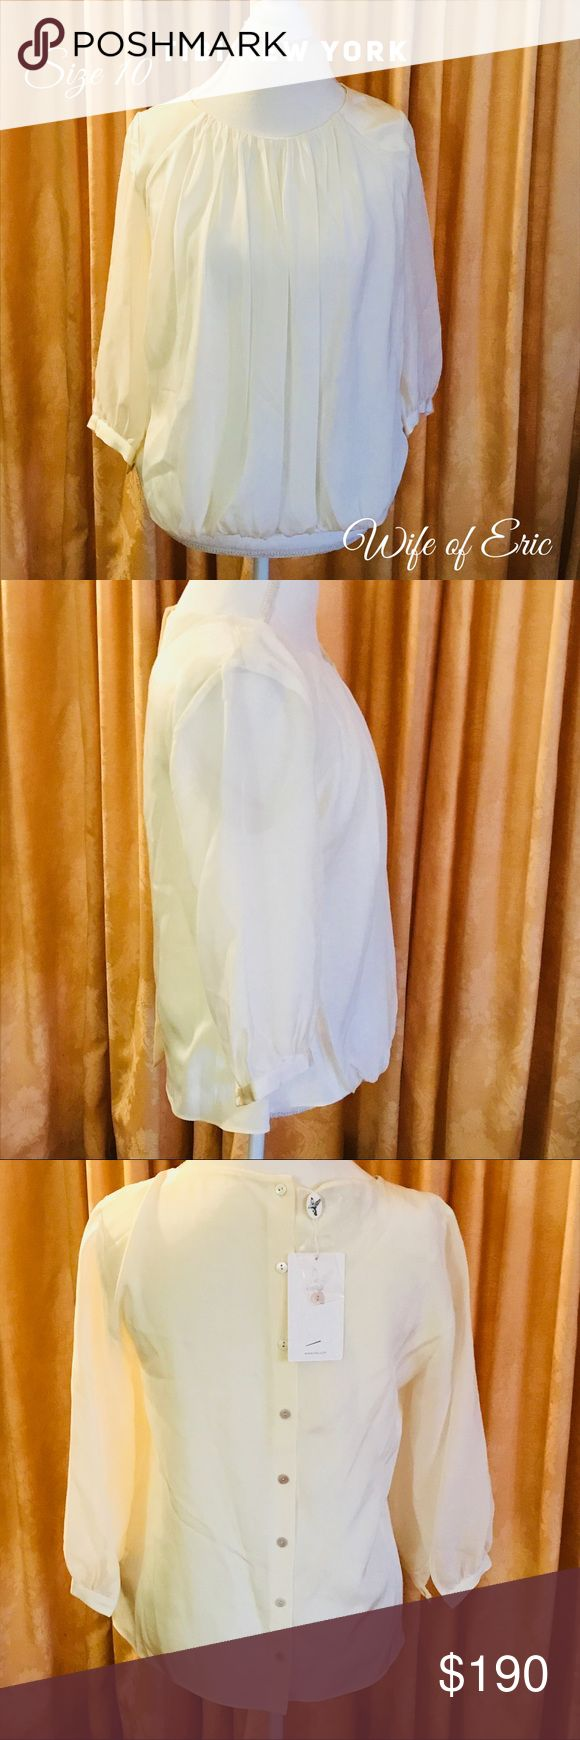 """TIbi New York Silk Pleated Blouse Button Back Stunningly beautiful ivory silk blouse. Features a Pleated front and buttons down the back.  It is slightly sheer on the 3/4 length sleeves. Purchased with the TIBI skirt they are a perfect match. Approximate measurements  Bust 38 Length 26"""" Tibi Tops Blouses"""